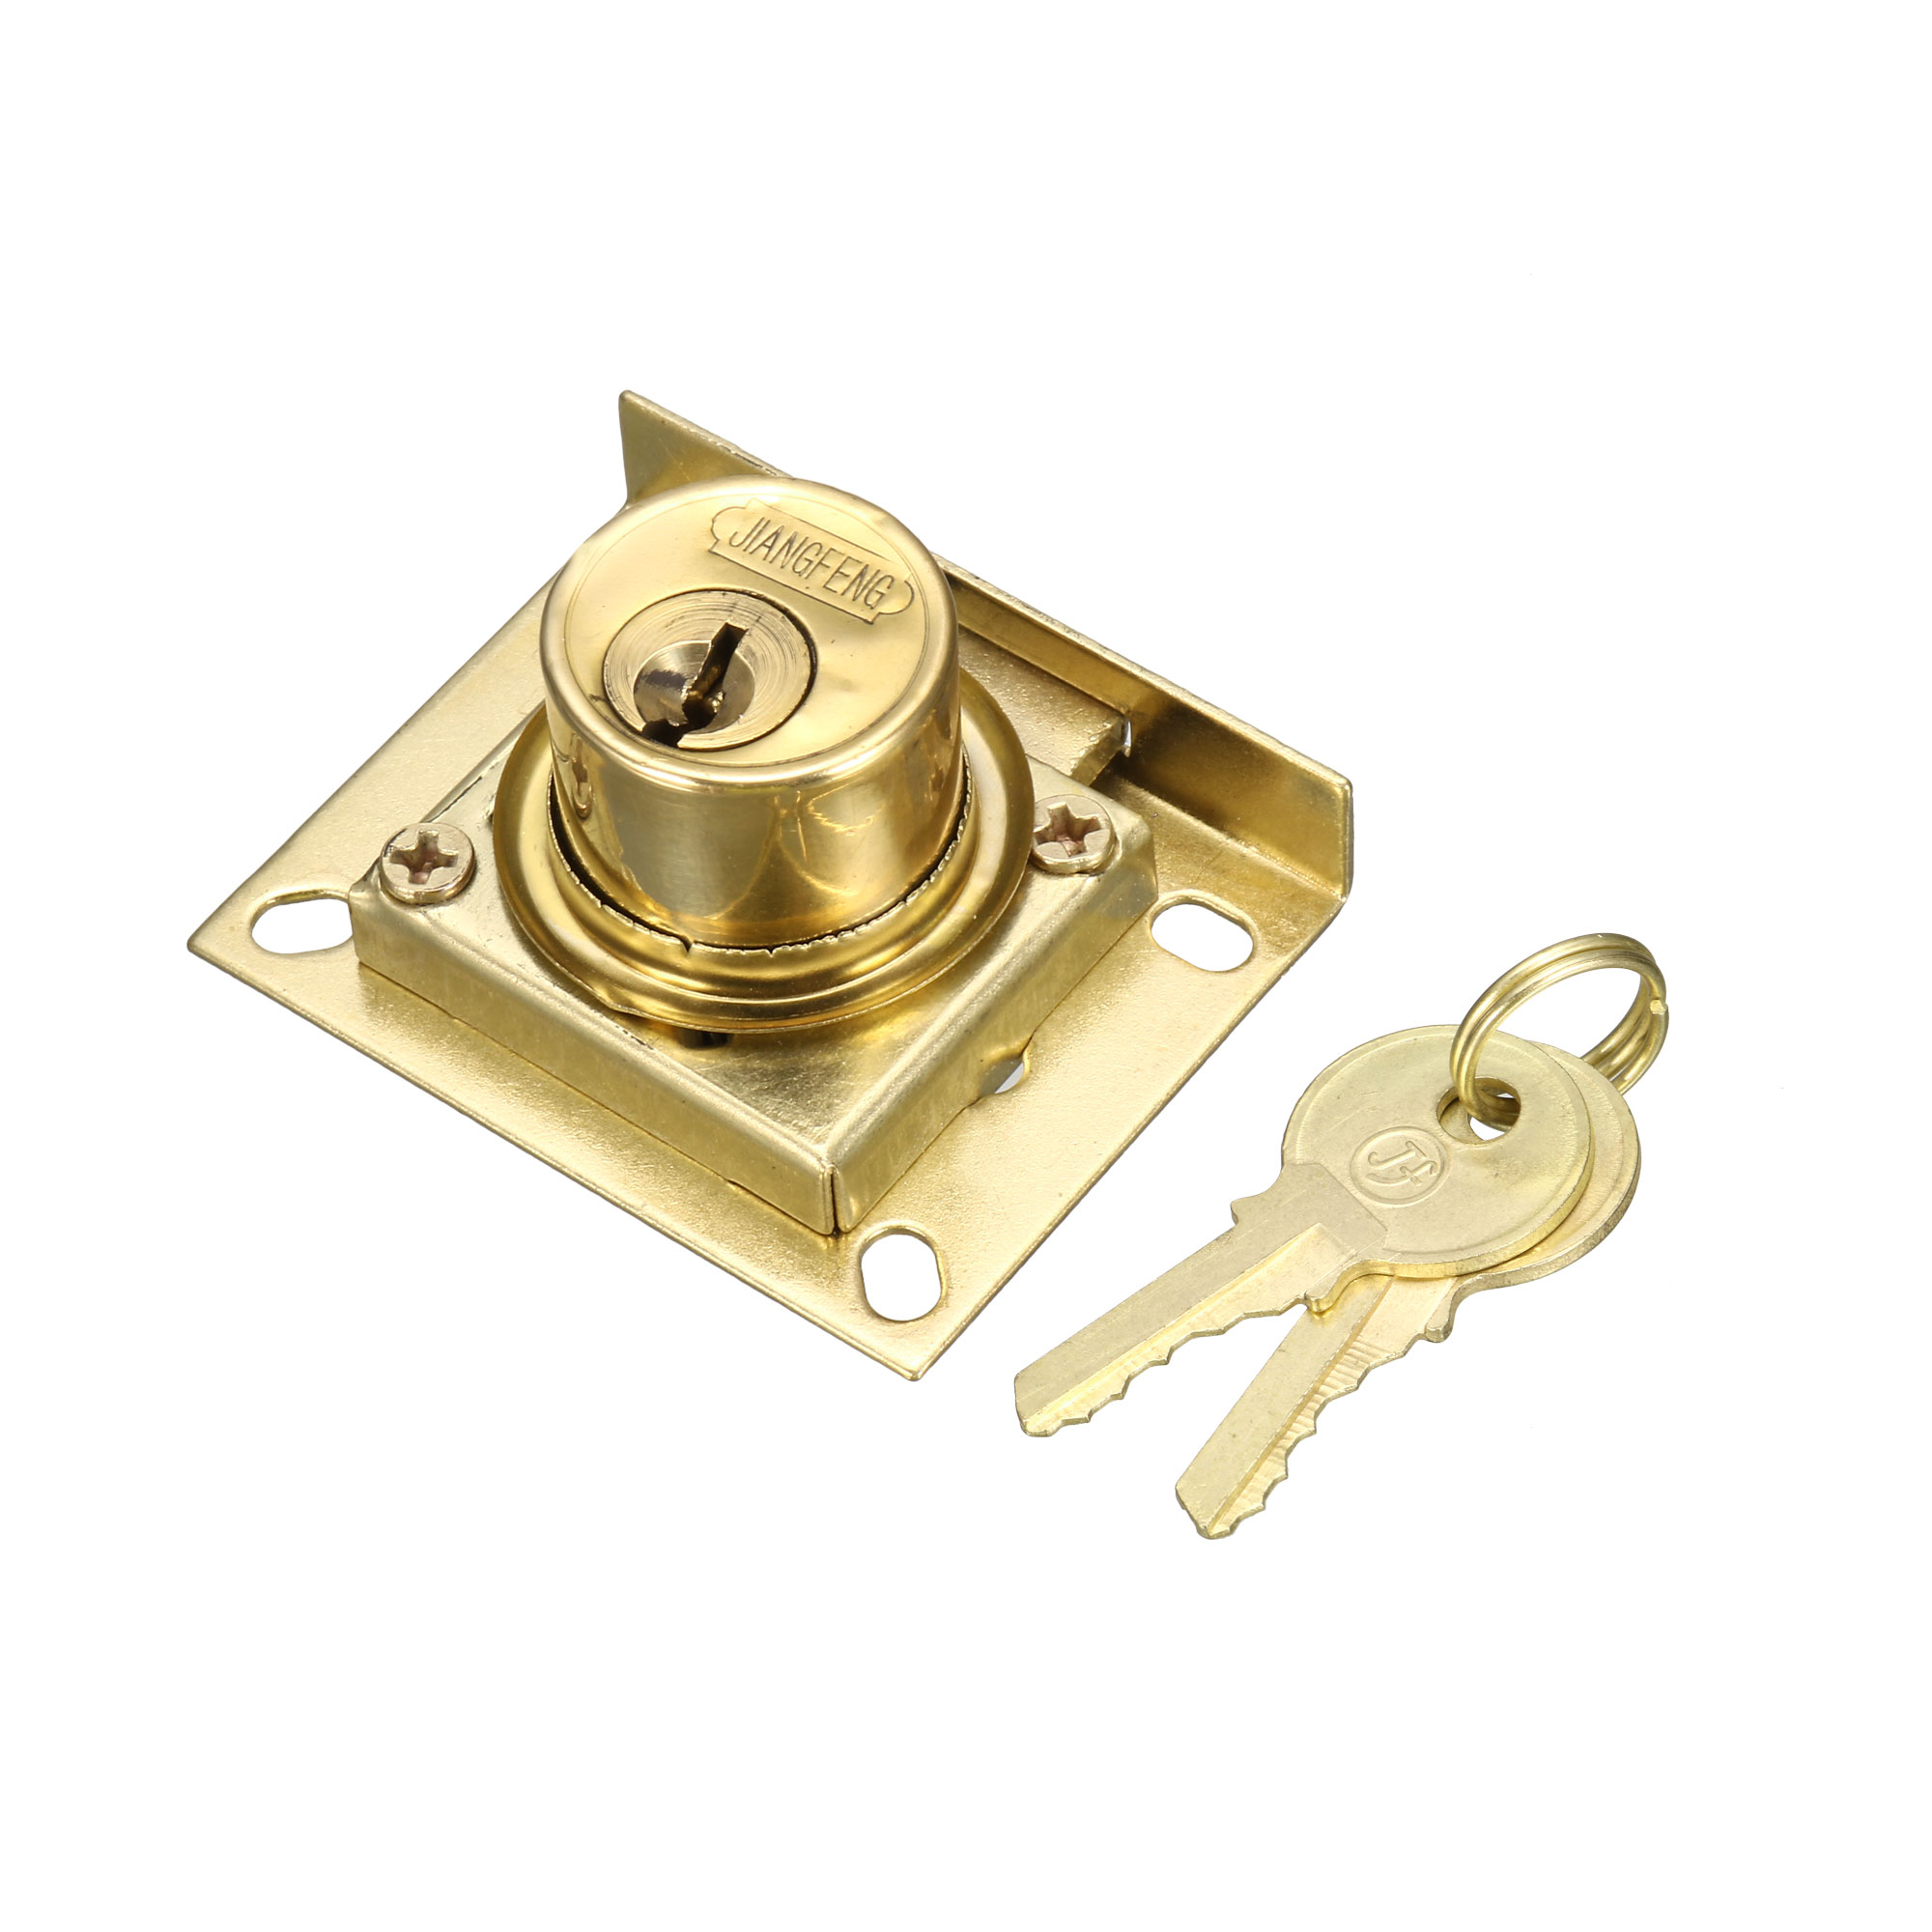 Home Office 22mm Diameter Cylinder Head Furniture Security Drawer Lock w 2 Keys